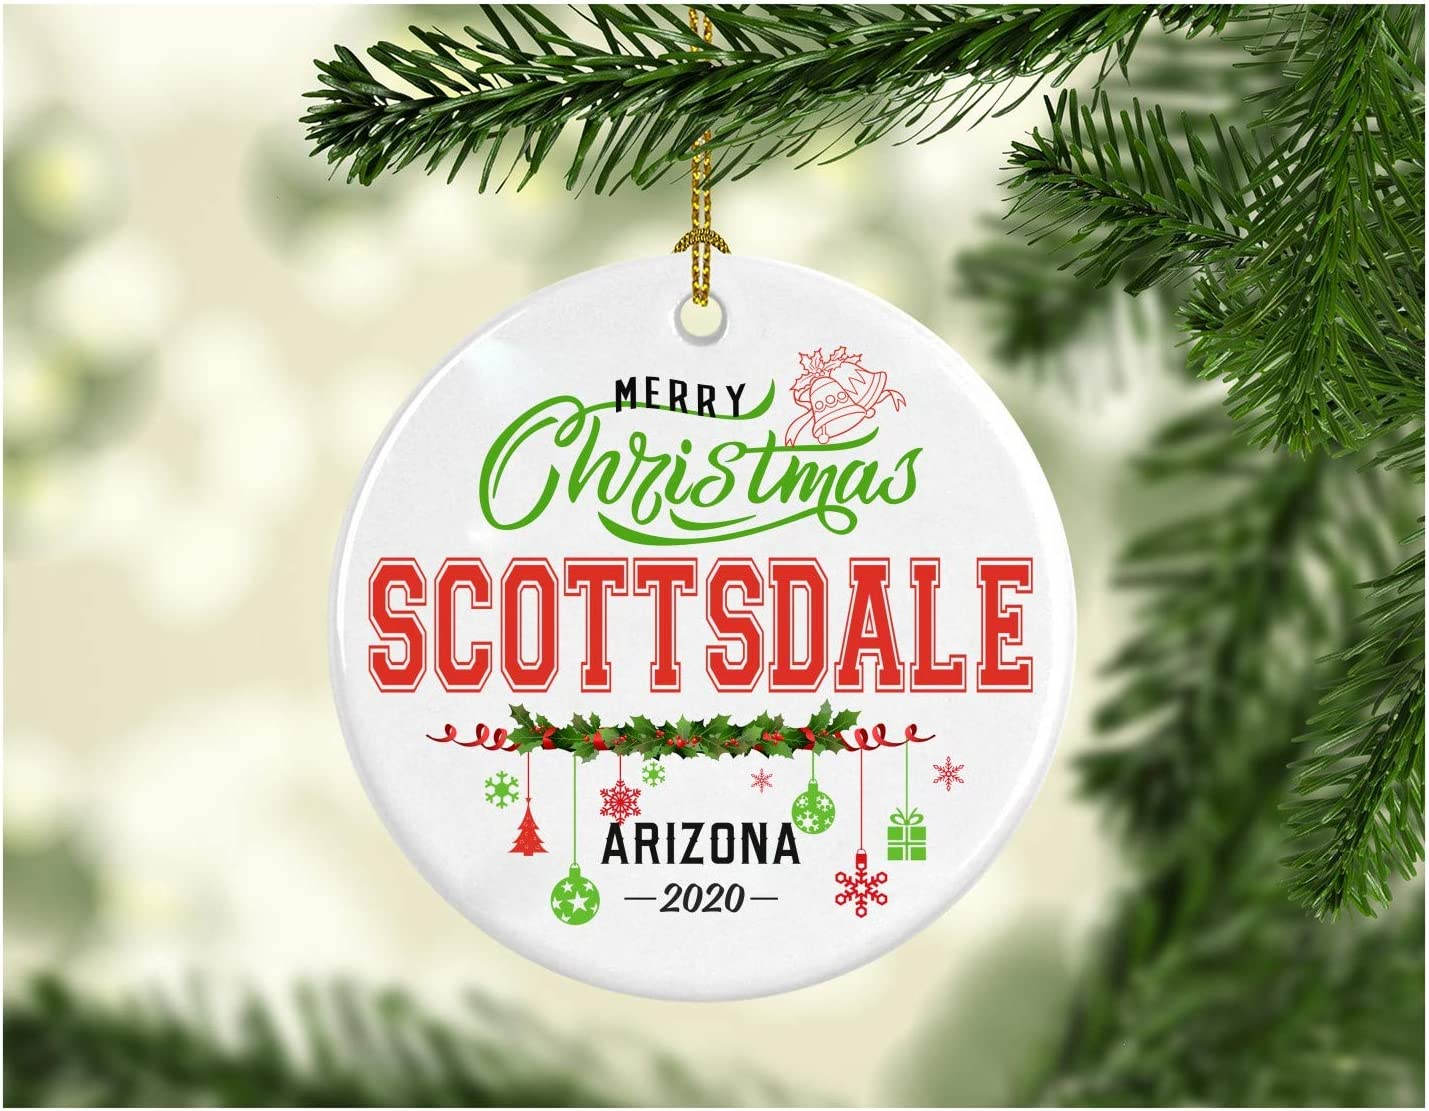 Christmas Decorations Tree Ornament - Gifts Hometown State - Merry Christmas Scottsdale Arizona 2020 - Gift for Family Rustic 1St Xmas Tree in Our New Home 3 Inches White